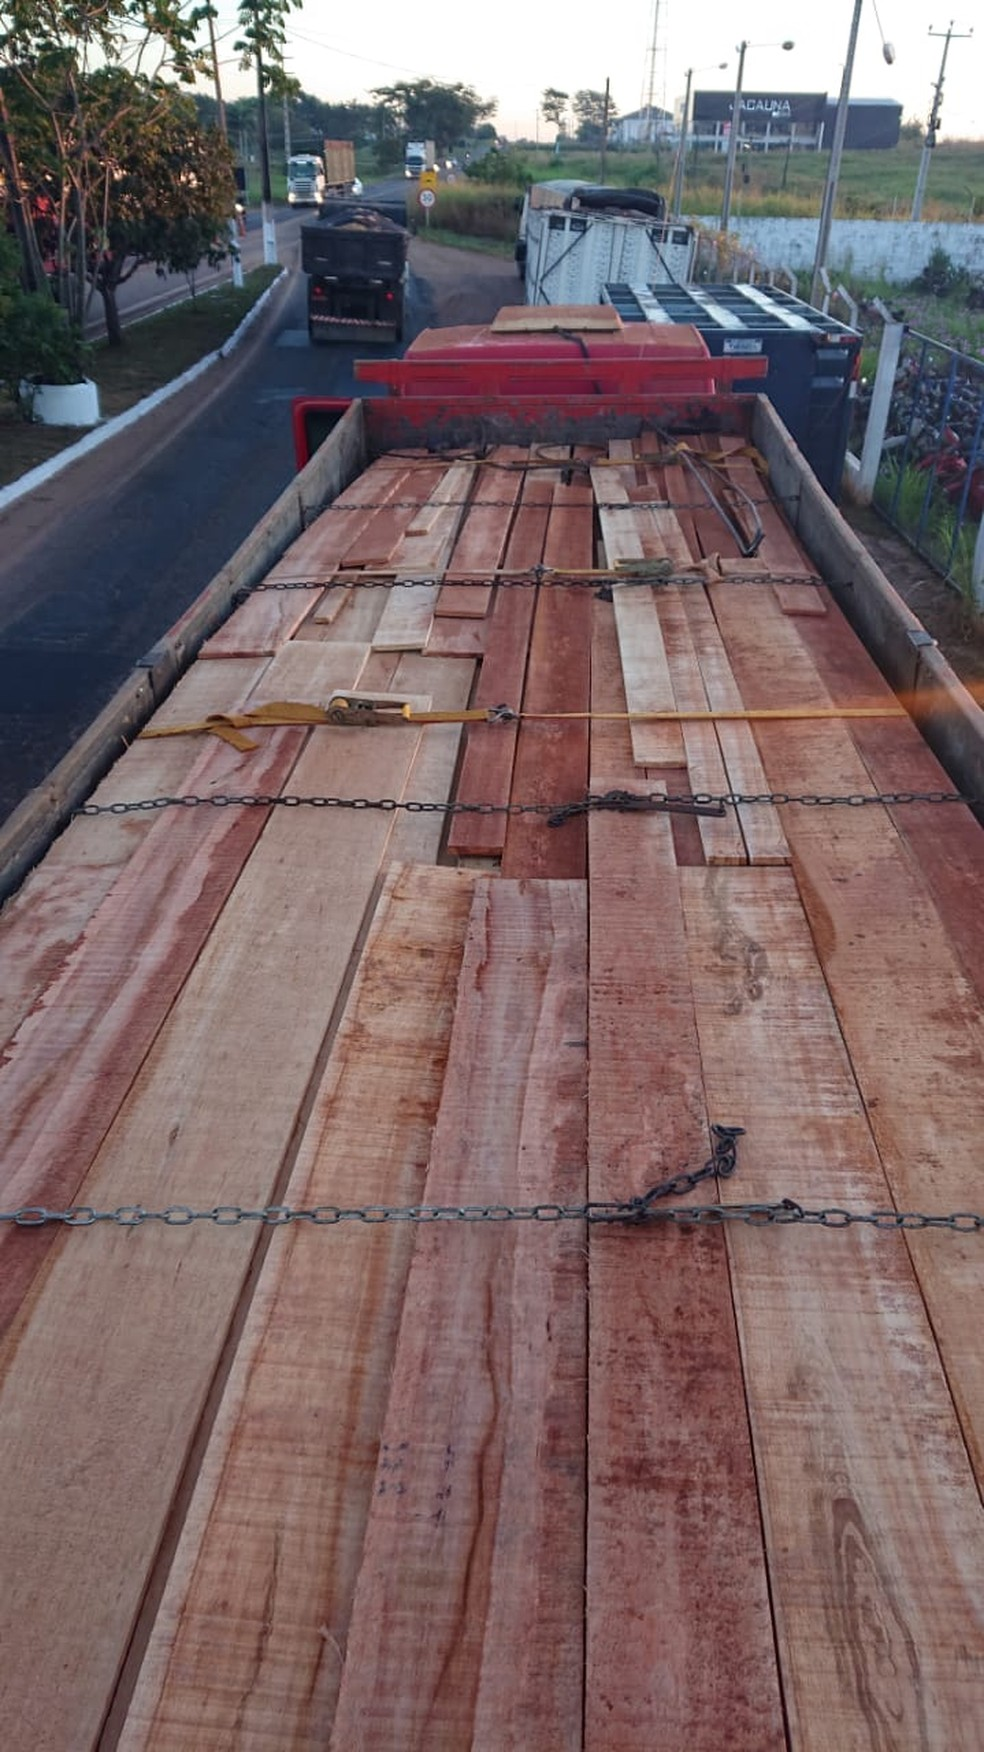 25m3 of lumber seized in Imperatriz